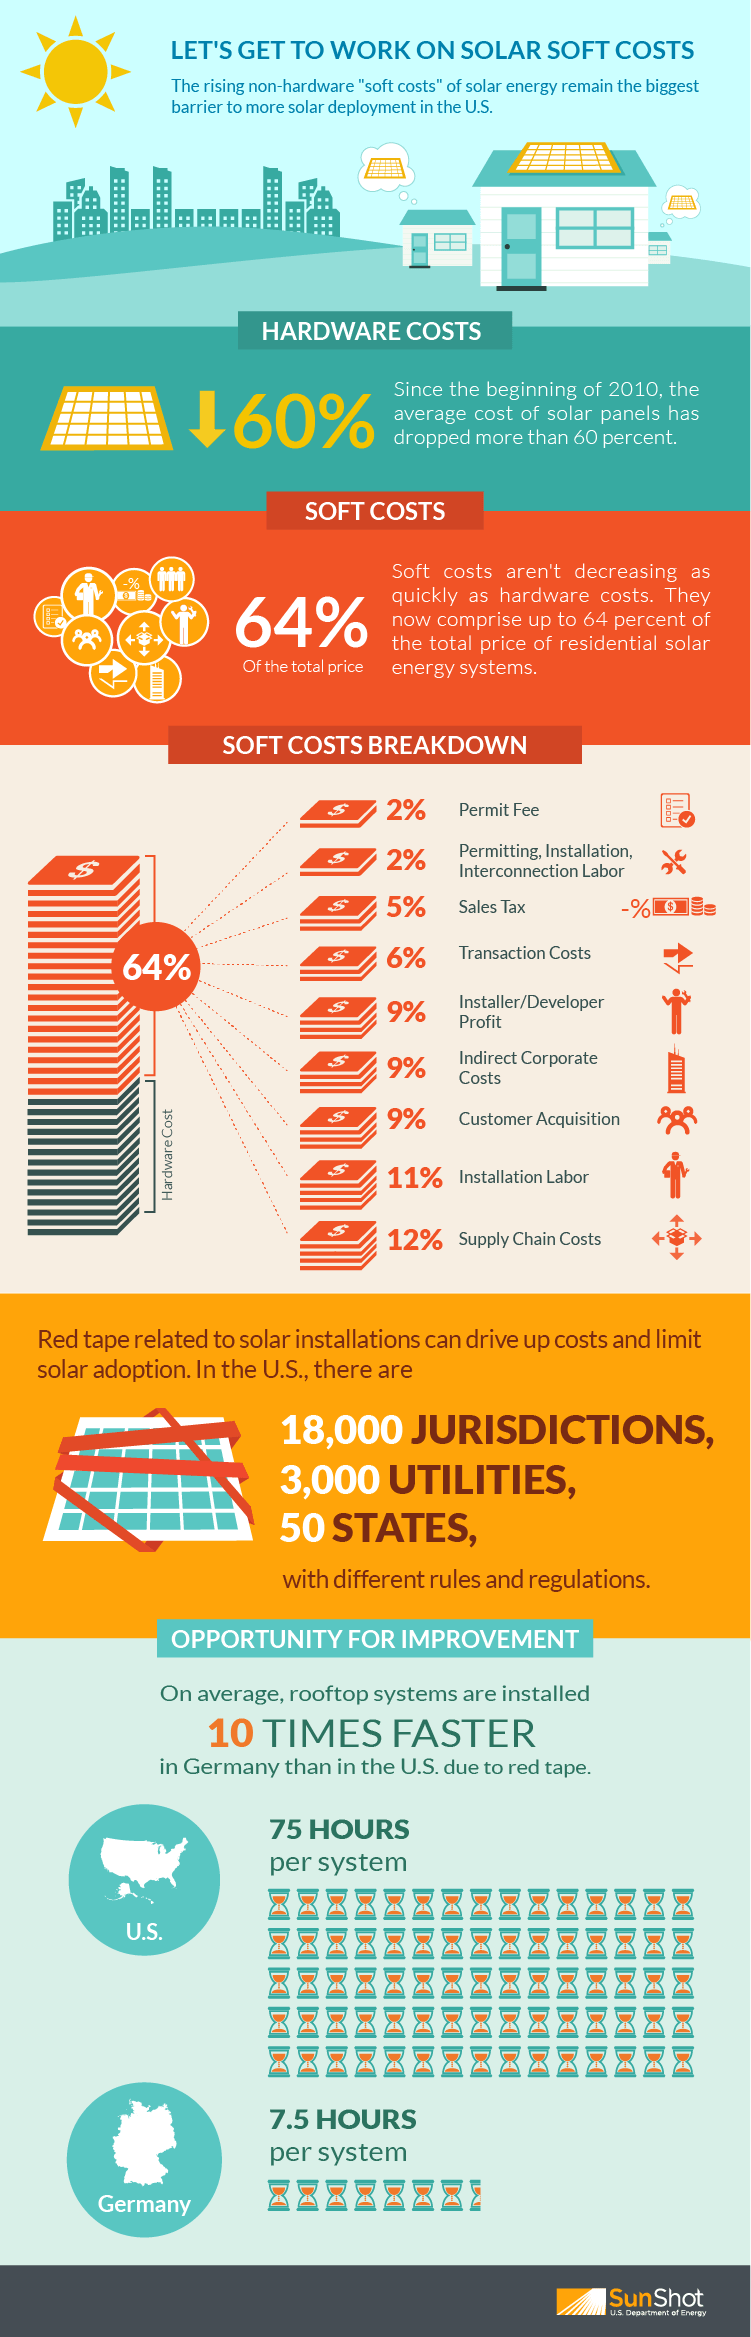 SunShot Infographic